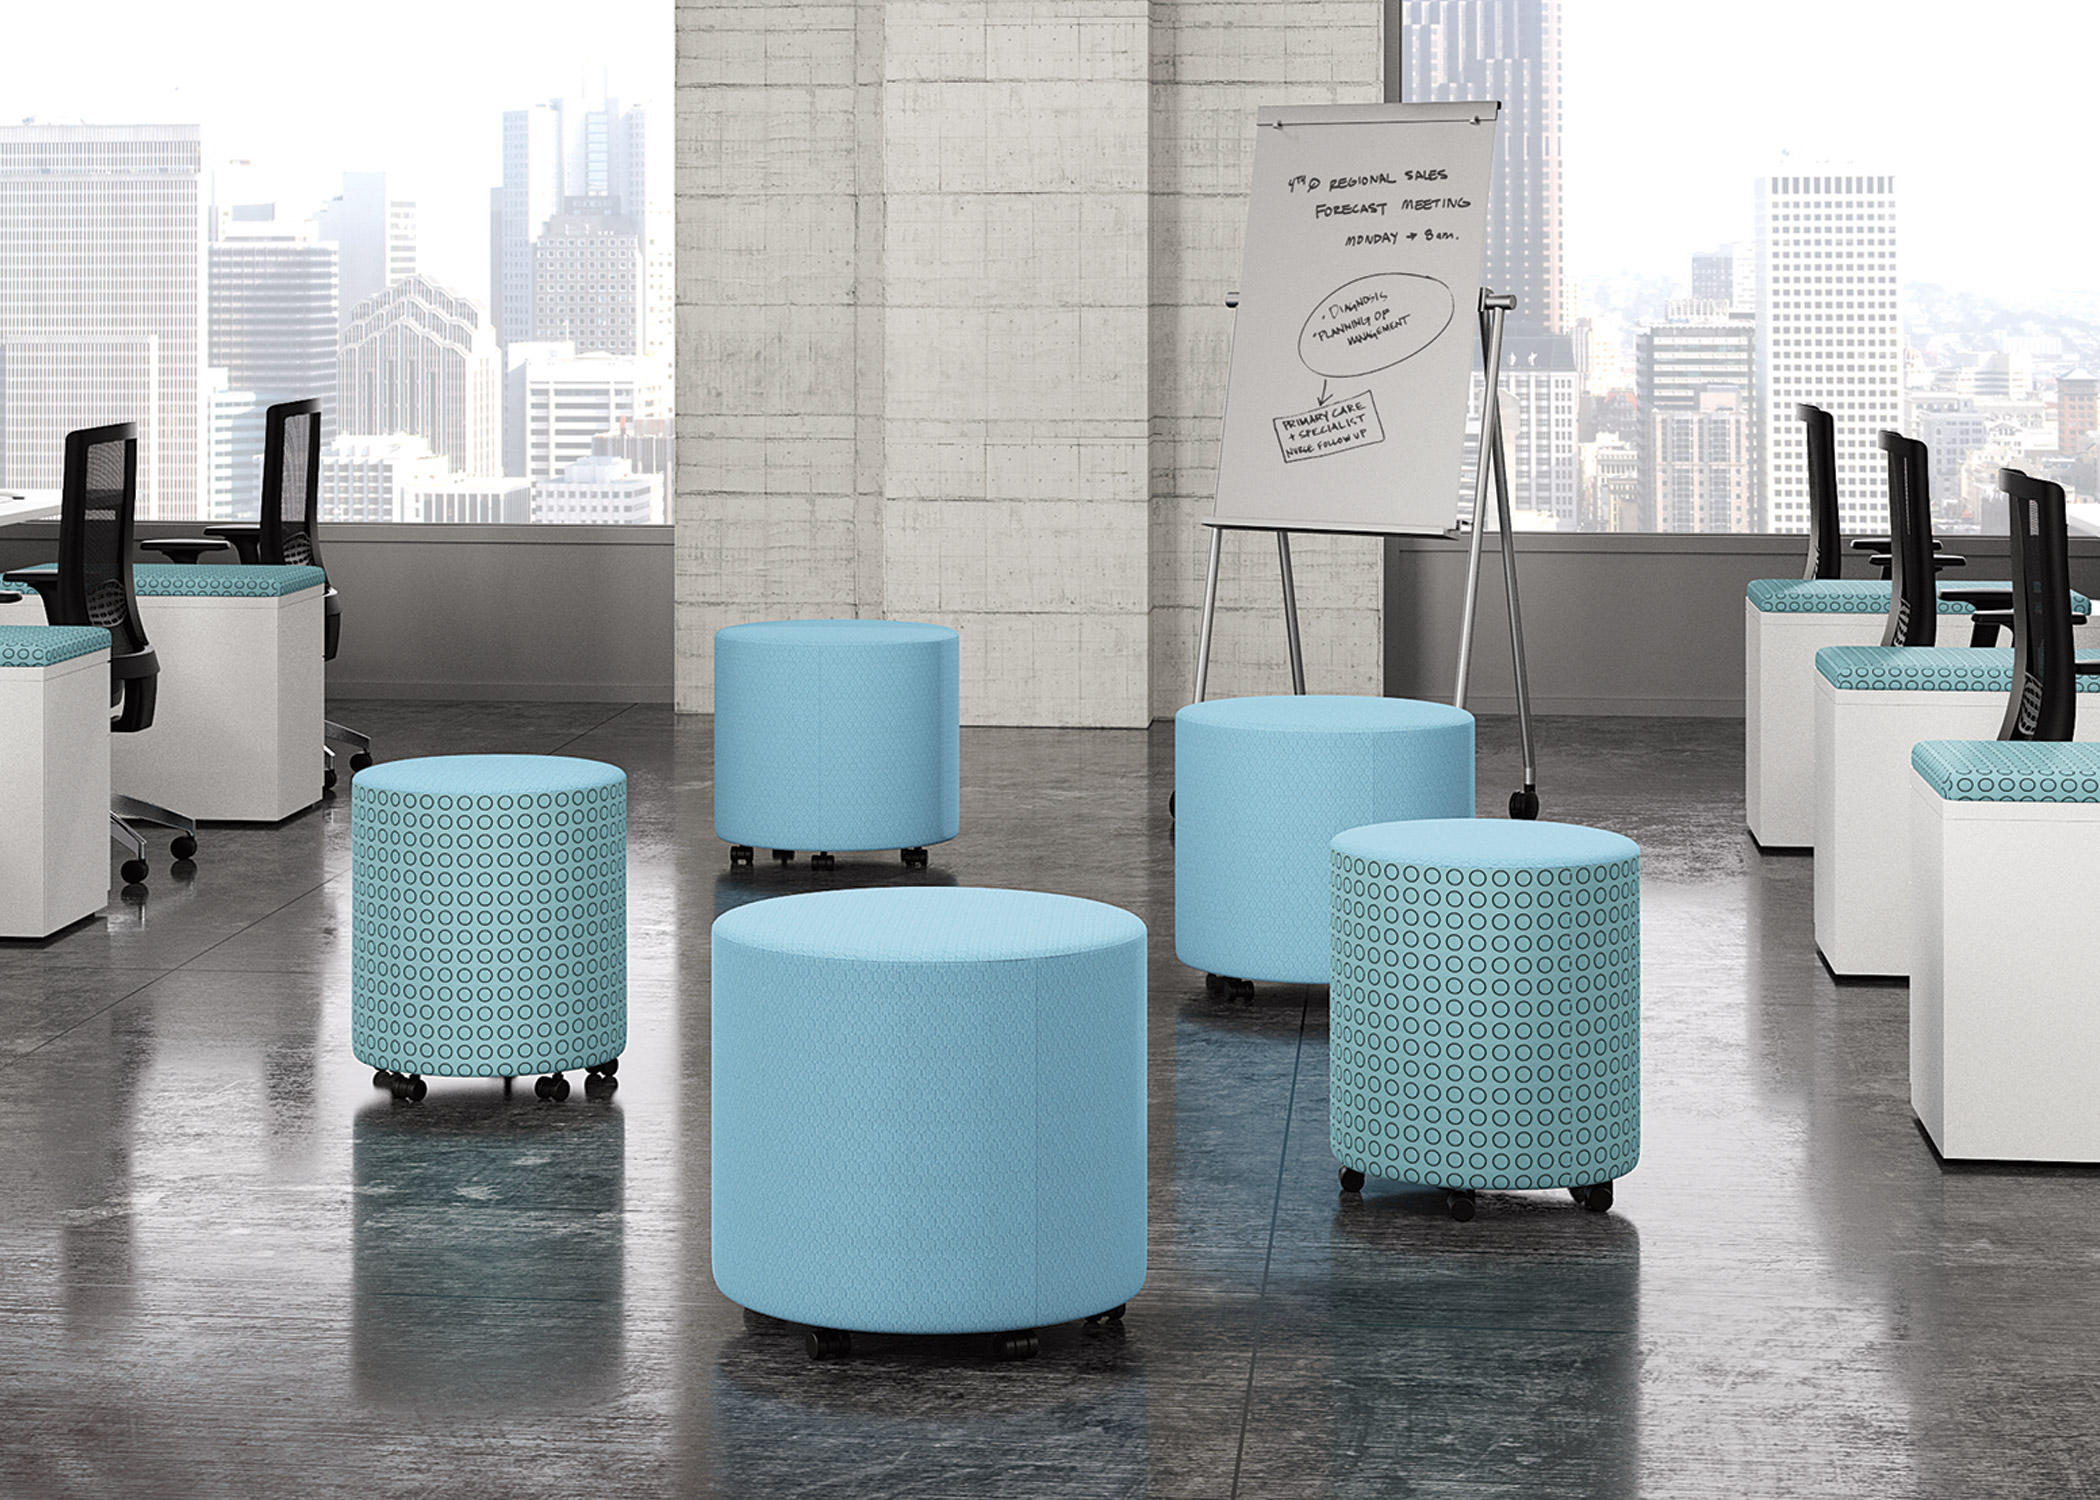 Whimsy furniture Modern Whimsy Seating By National Office Furniture Pinterest Whimsy Seating Poufs From National Office Furniture Architonic